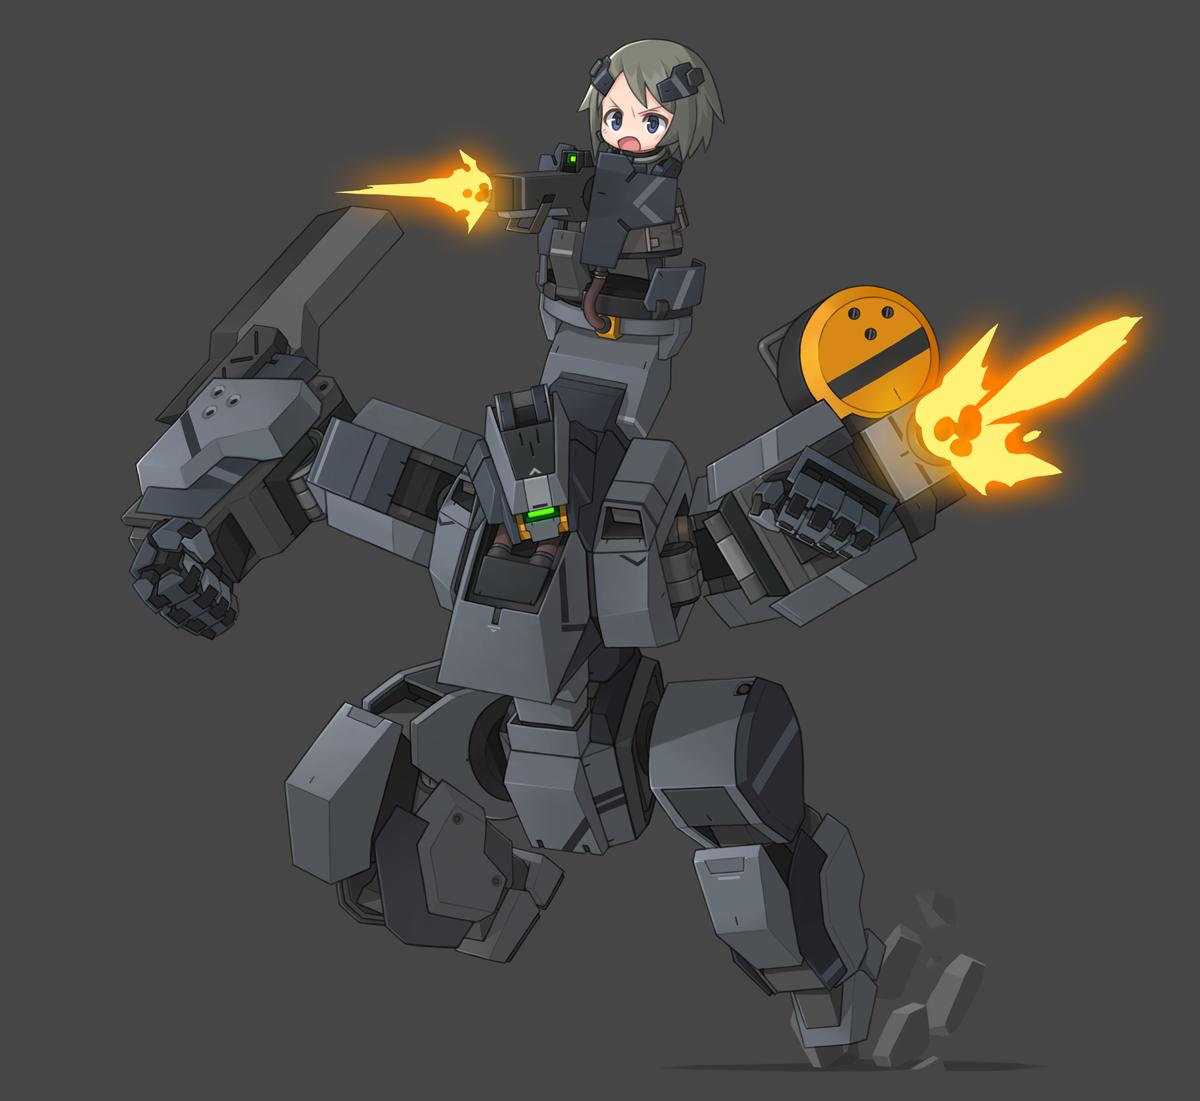 1girl 1other chibi clenched_hand commentary_request firing glowing glowing_eye gun korean_commentary machine_gun mecha mechanical_arm original ran_system robot robot_joints robotic_legs running weapon